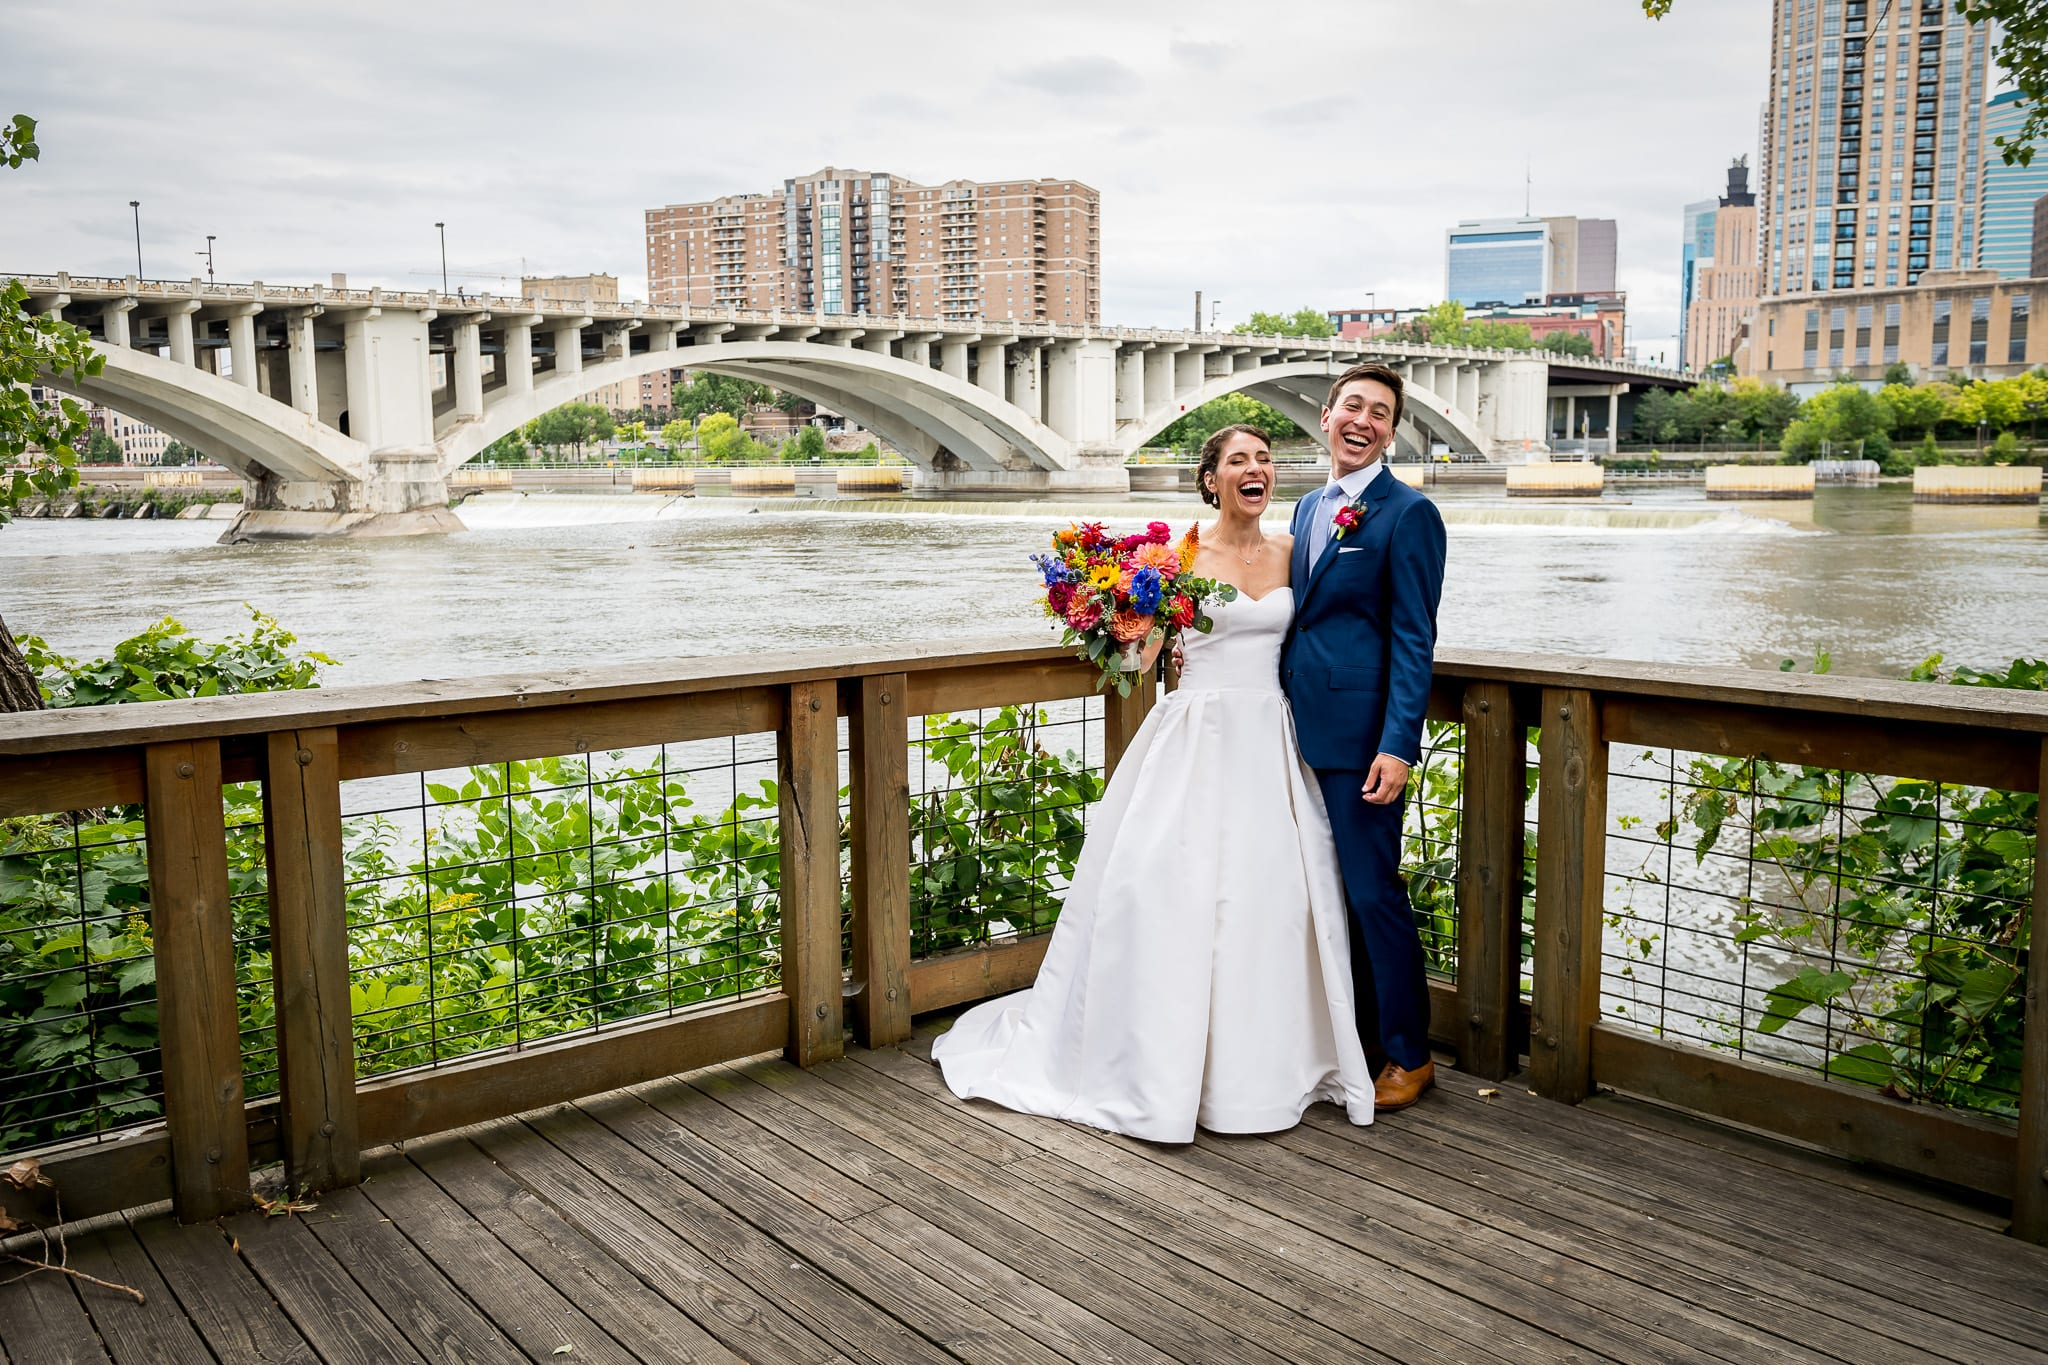 Bride and groom laughing out loud on the wooden deck at their Nicollet Island Pavilion wedding, with the Mississippi River and the Central Avenue Bridge behind them